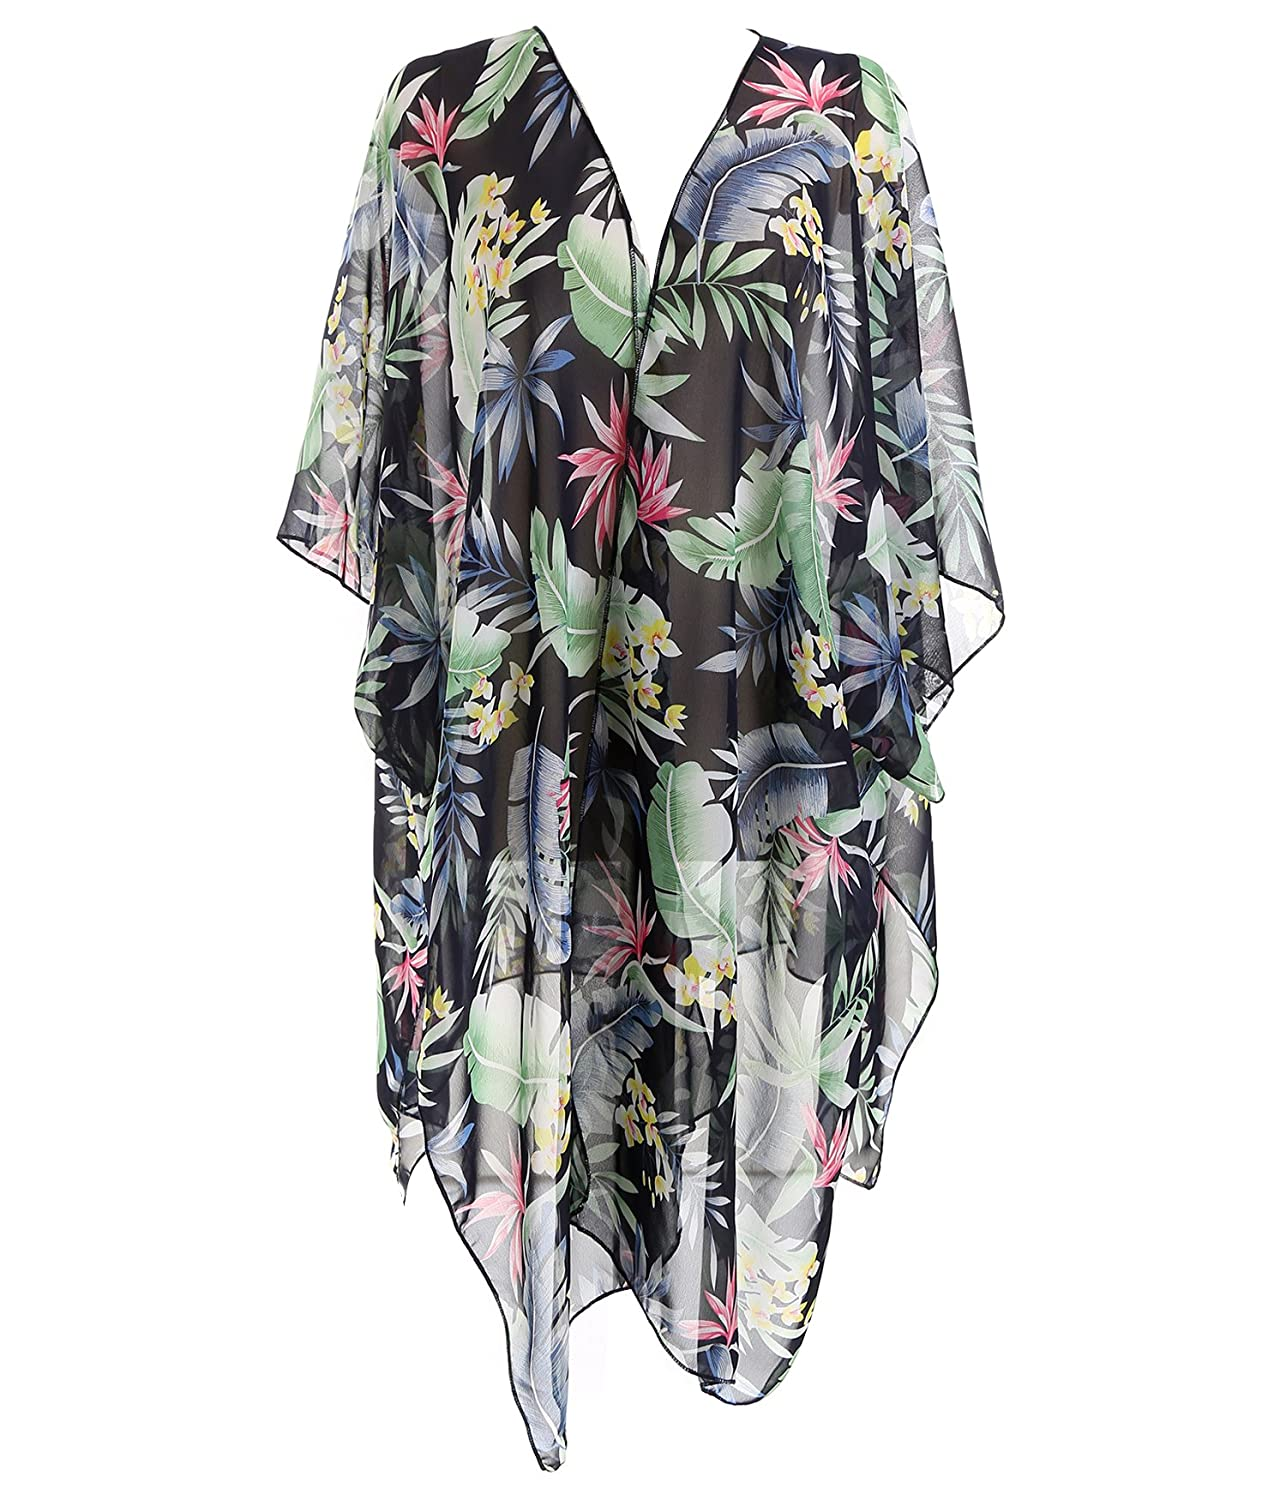 cd61efca06 Create Your Own Summer Look: This cover up features colorful floral  embroidered style, made with sheer fabric to create an impressive  silhouette look.